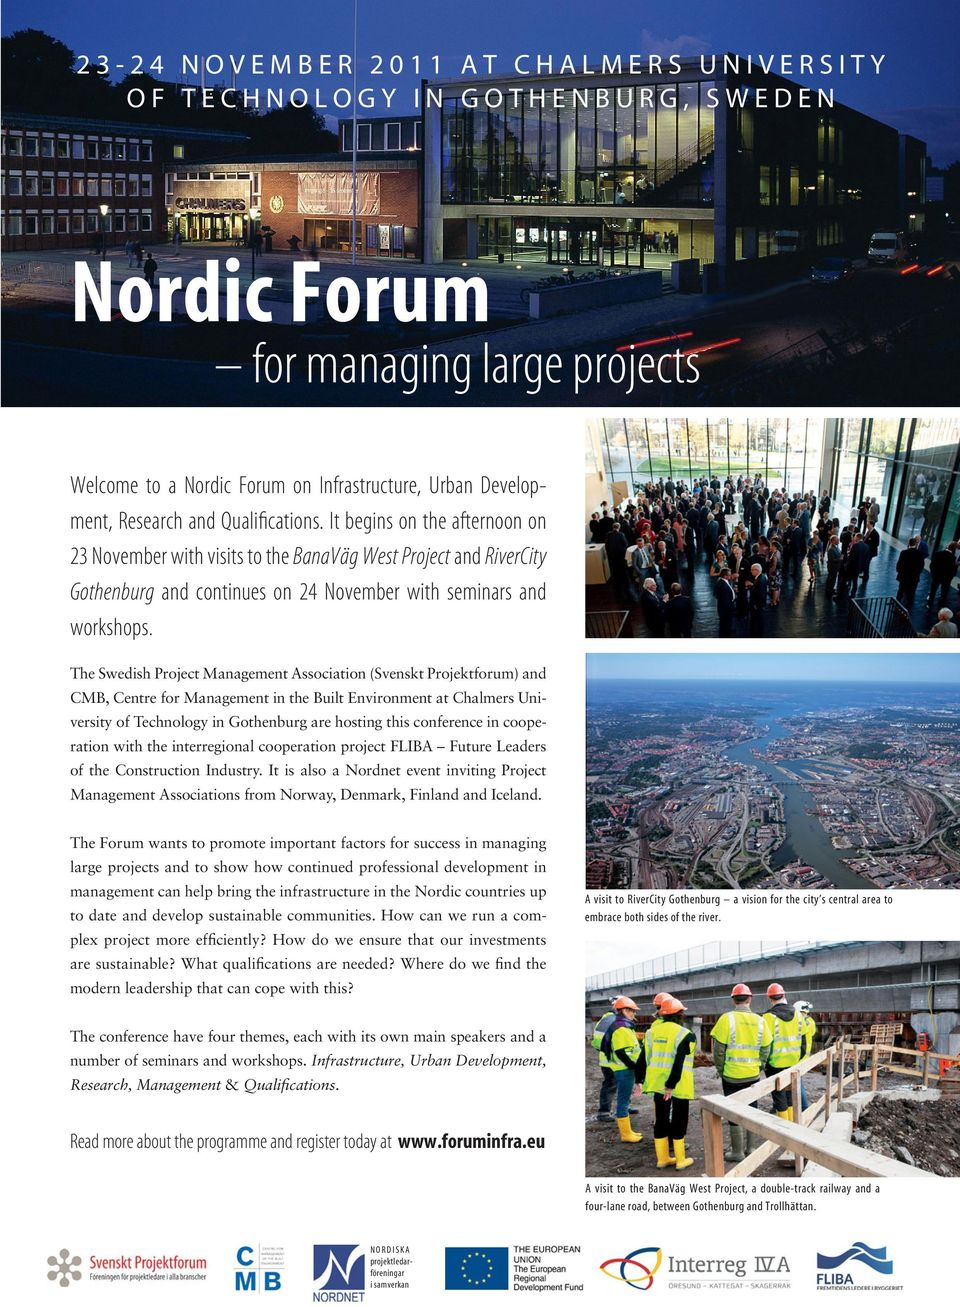 The Swedish Project Management Association (Svenskt Projektforum) and CMB, Centre for Management in the Built Environment at Chalmers University of Technology in Gothenburg are hosting this